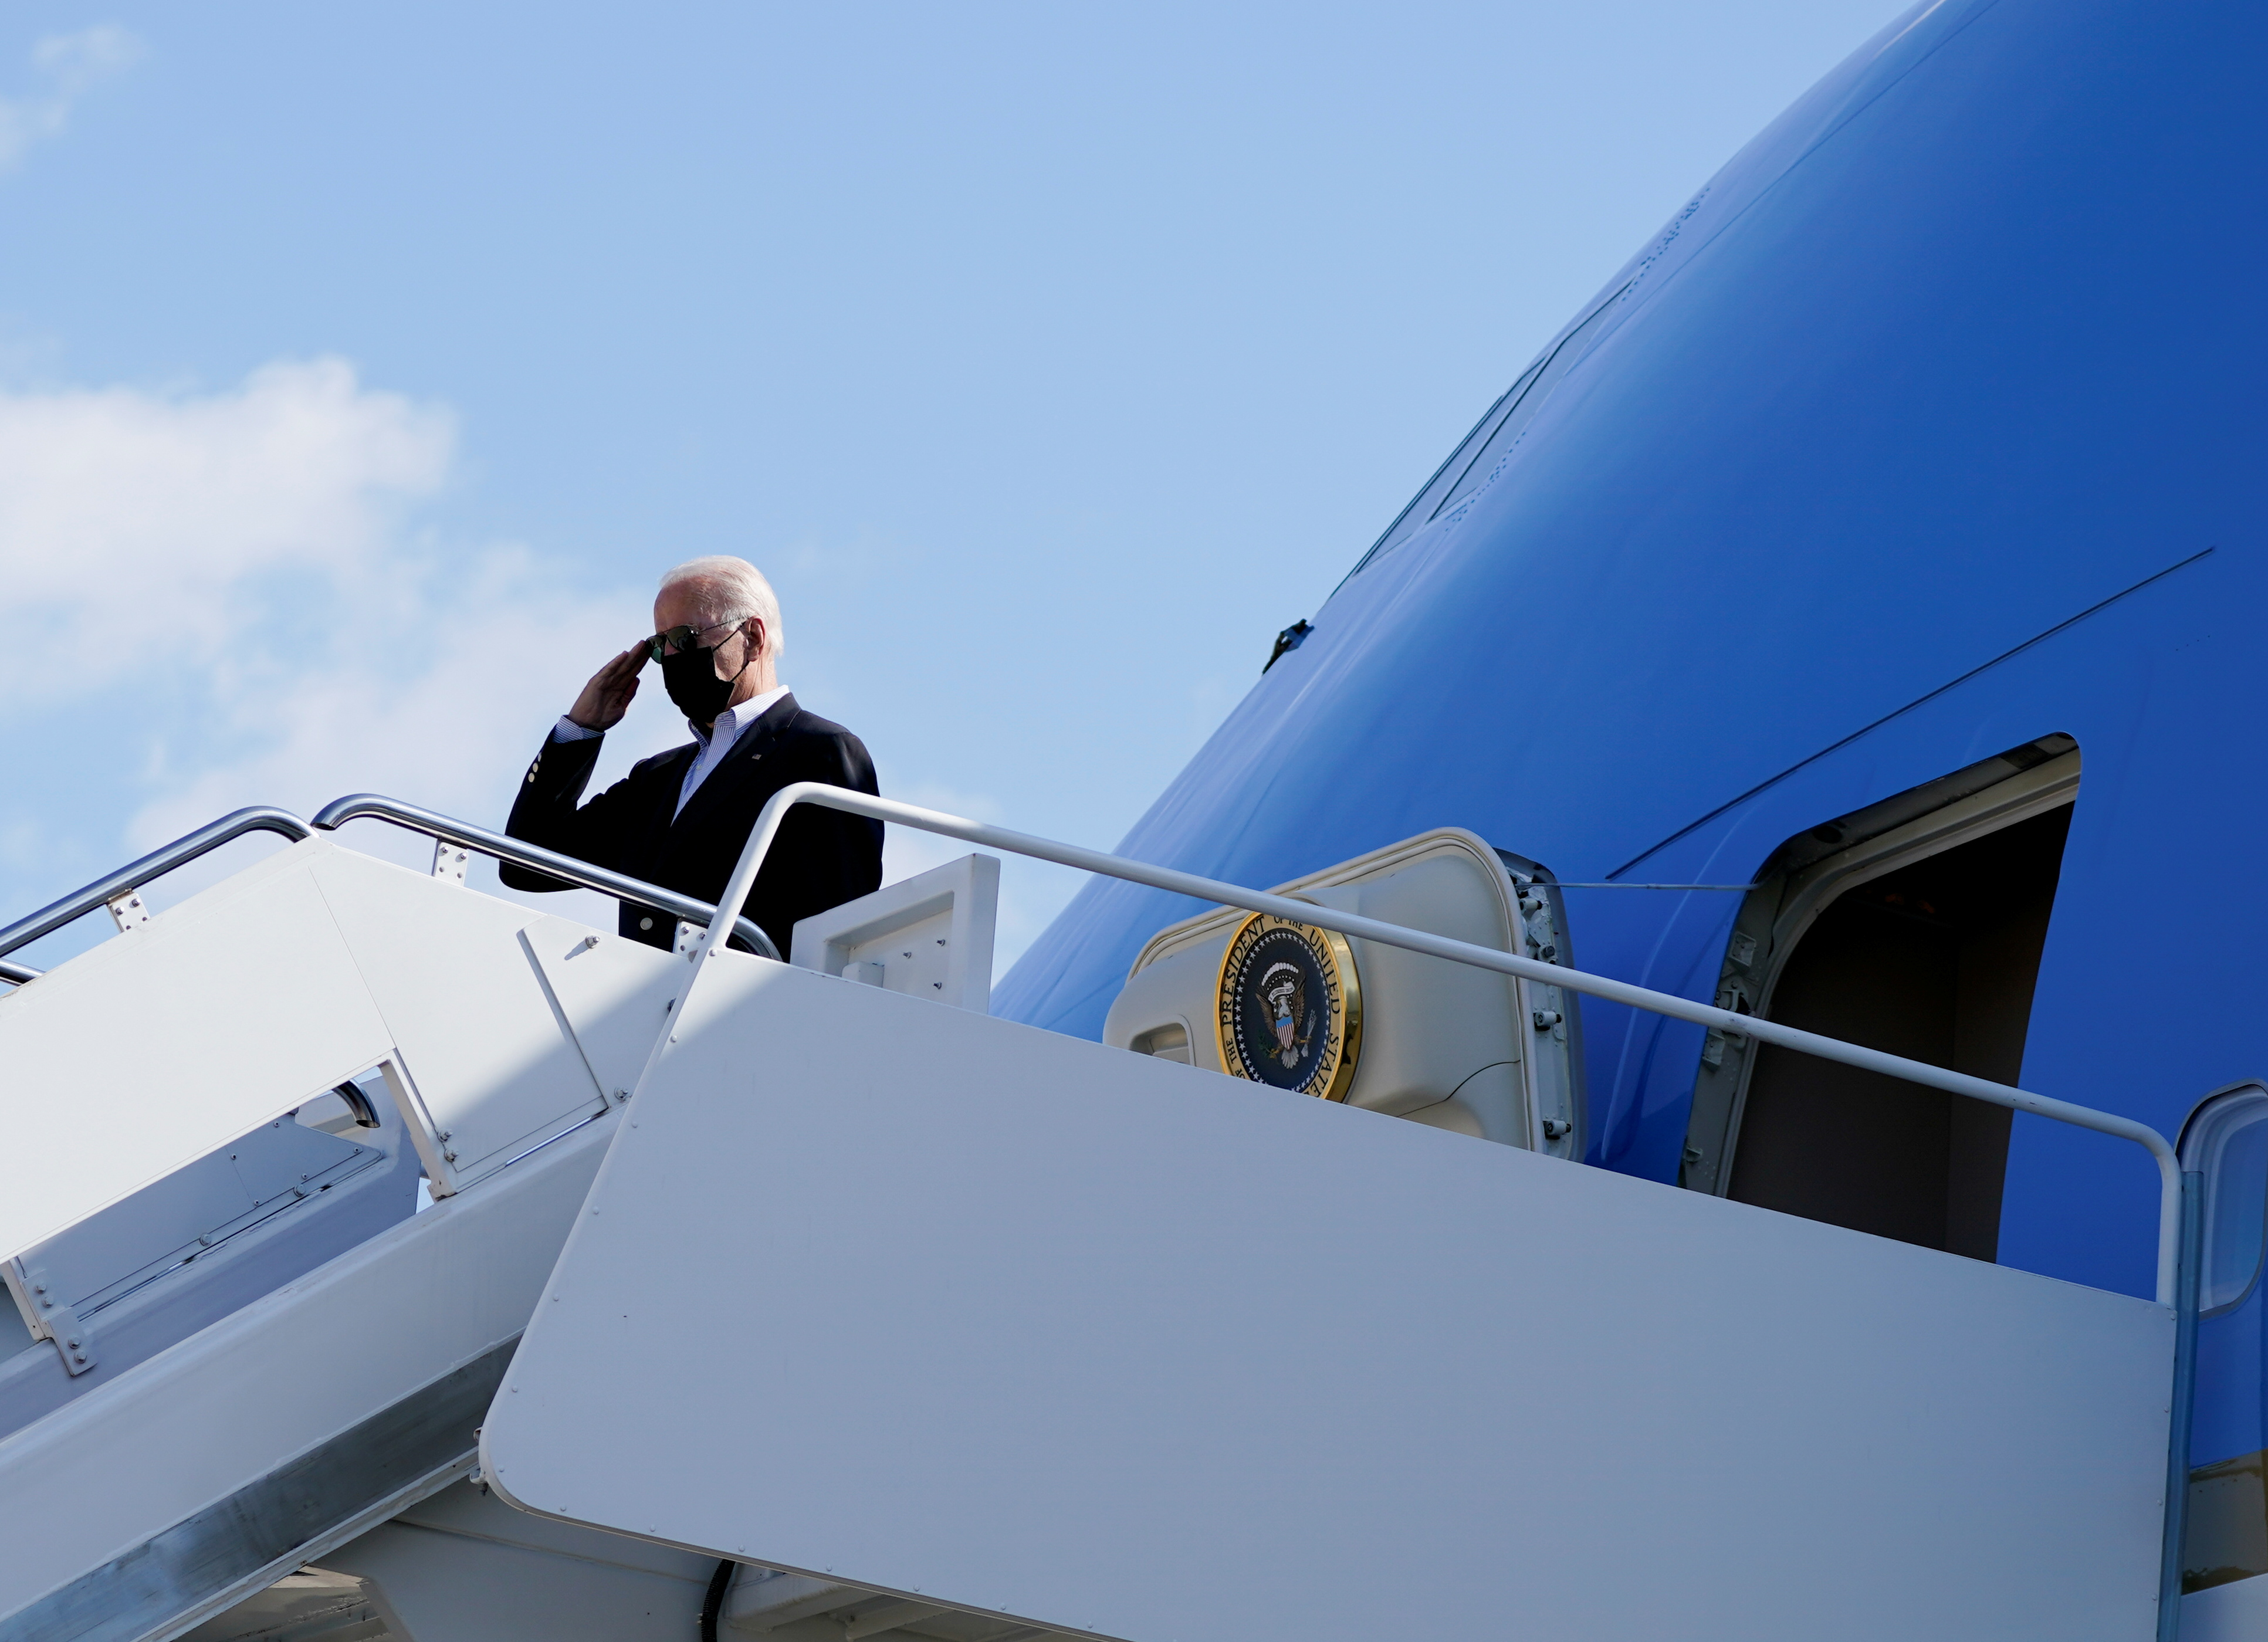 U.S. President Joe Biden salutes as he boards Air Force One to travel to New York and New Jersey to tour the hurricane-affected areas, from Joint Base Andrews, Maryland, U.S. September 7, 2021. REUTERS/Elizabeth Frantz